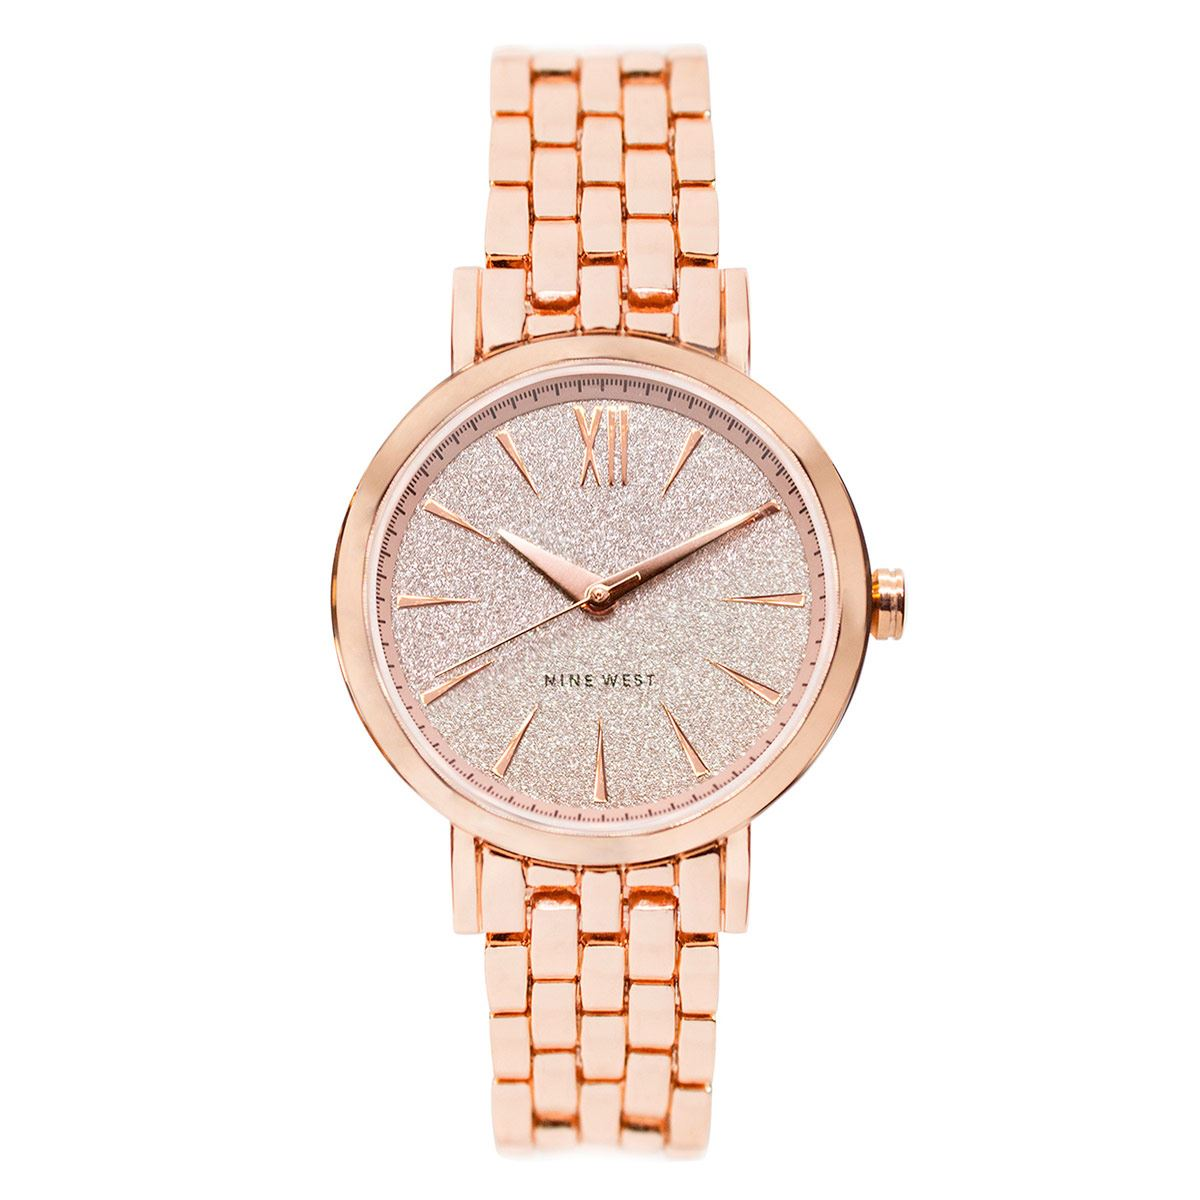 Reloj Nine West Para Dama Multicolor